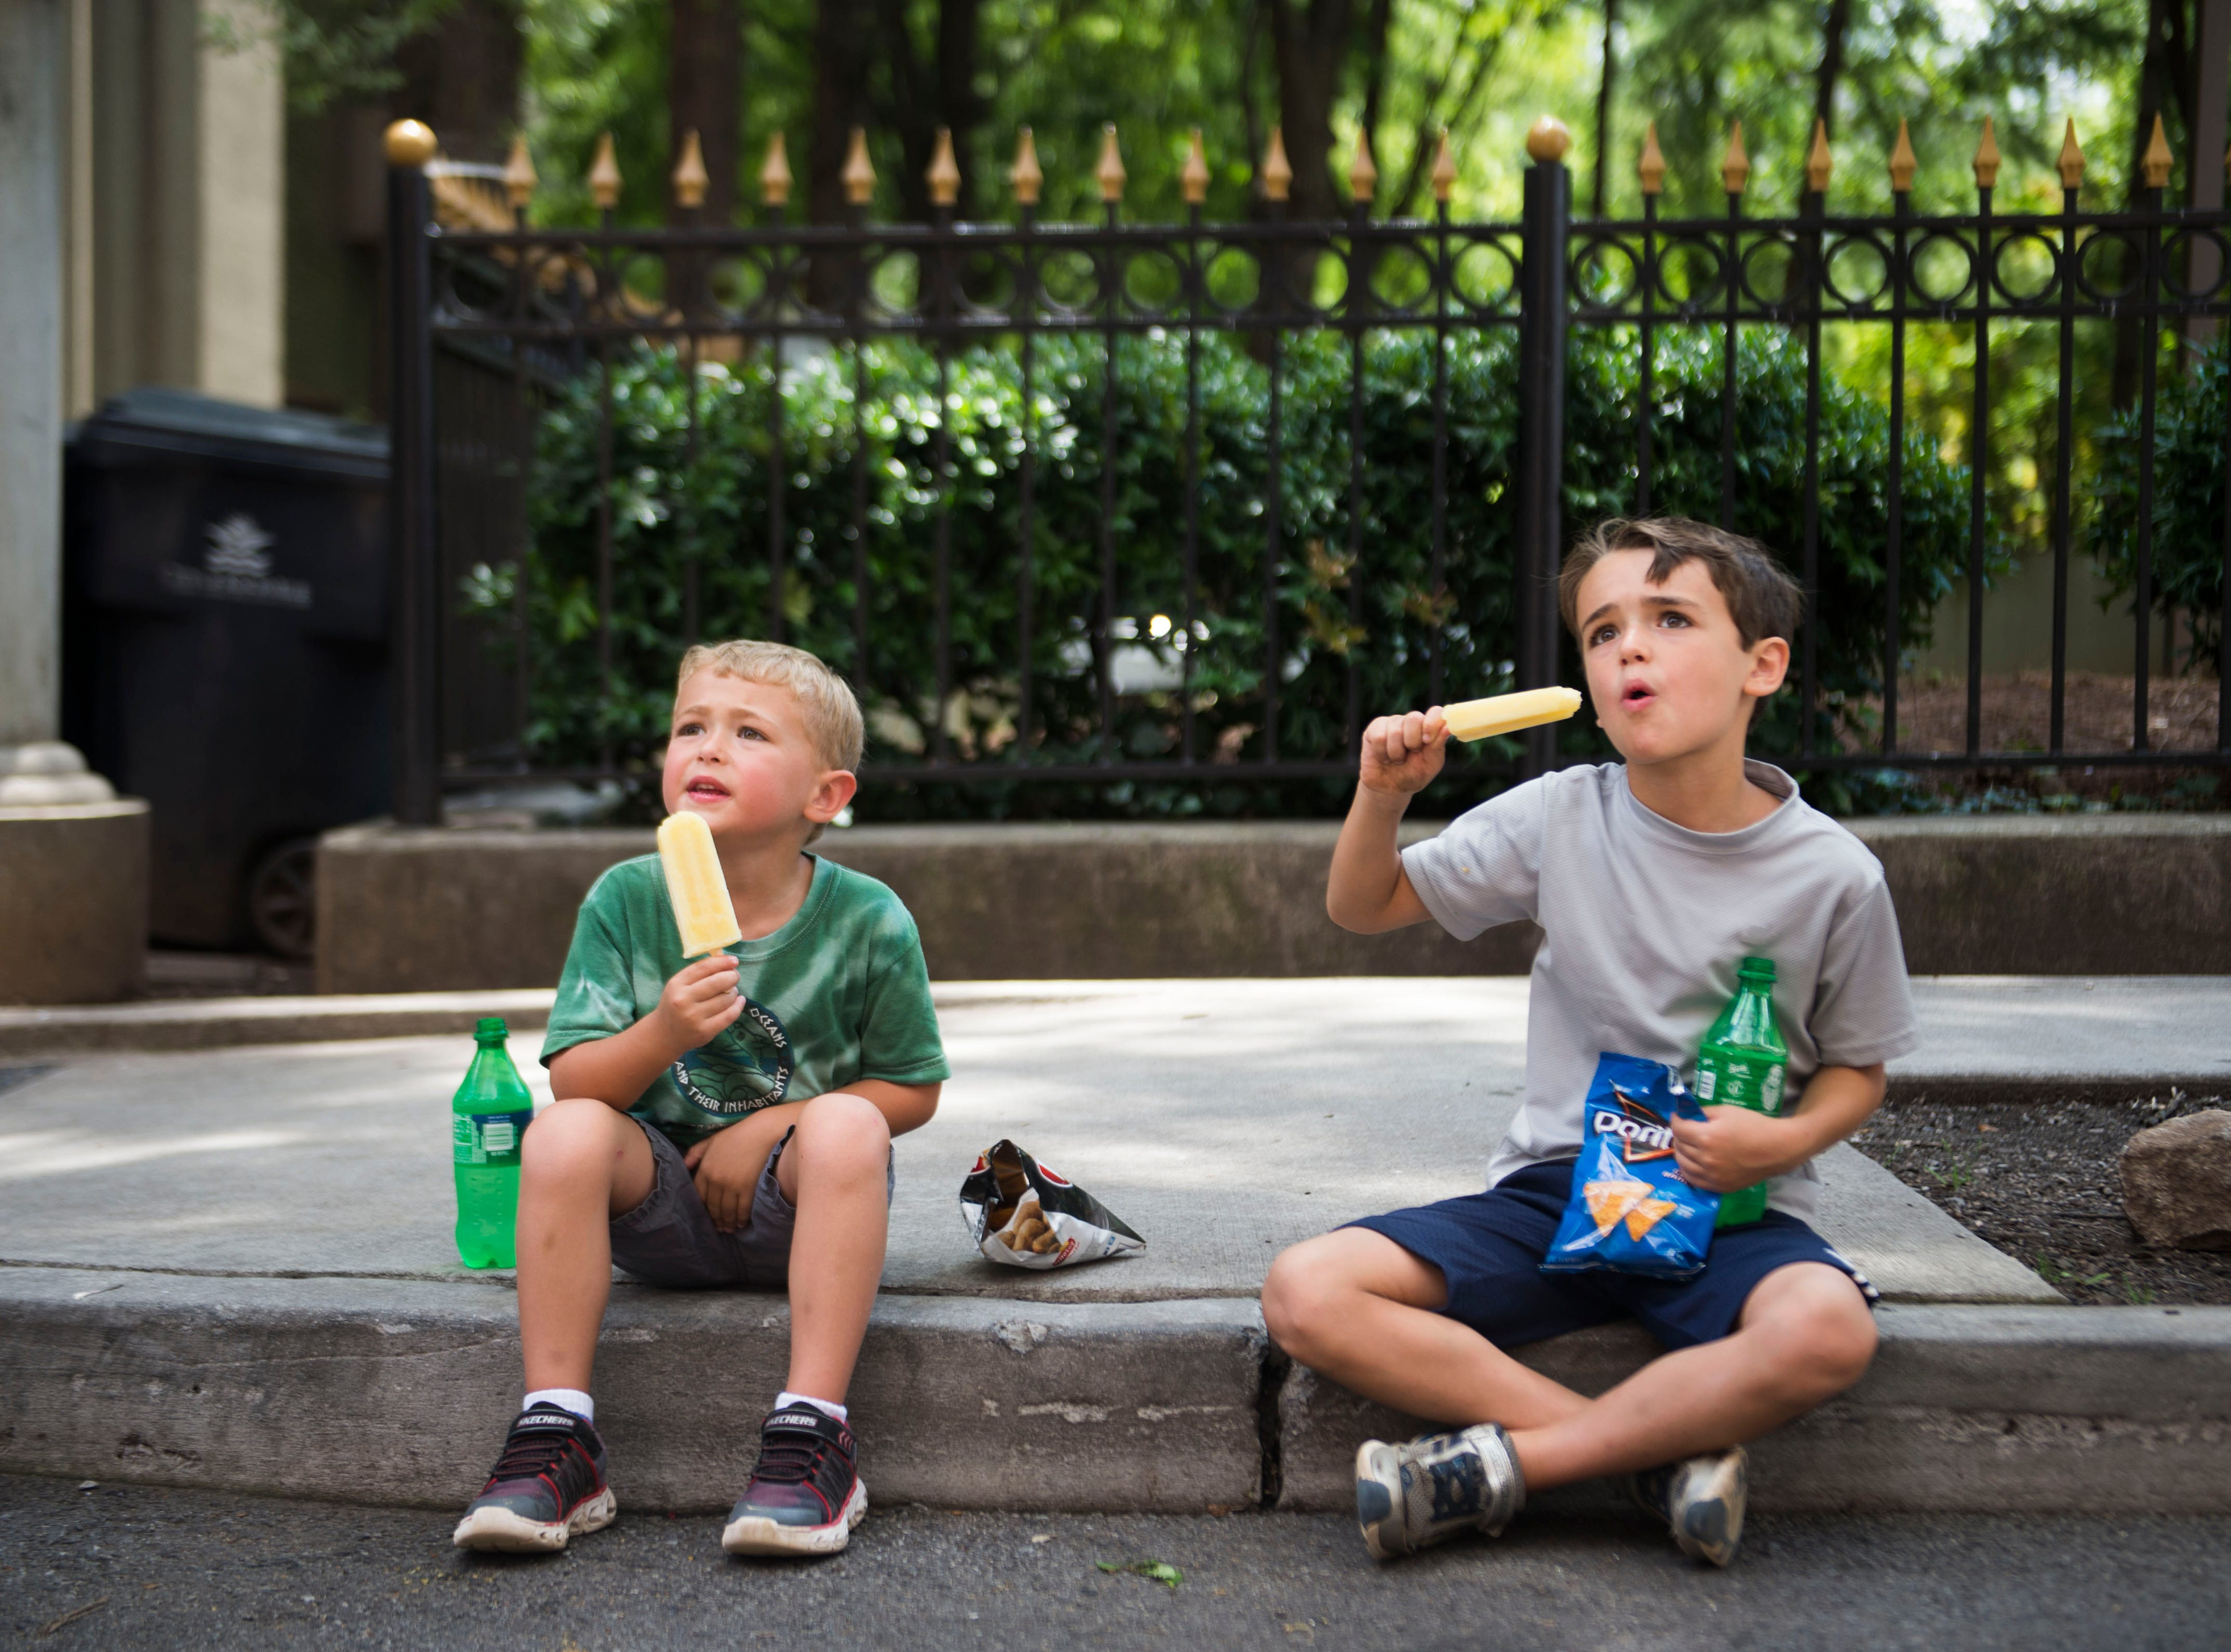 From left brothers Chase Stryk, 5, and Eli 8 eat their Artistic Pops at the farmers market in downtown Knoxville Saturday, Aug. 4, 2018. Artistic Pops are gluten free, nut free, and dairy free popsicles.